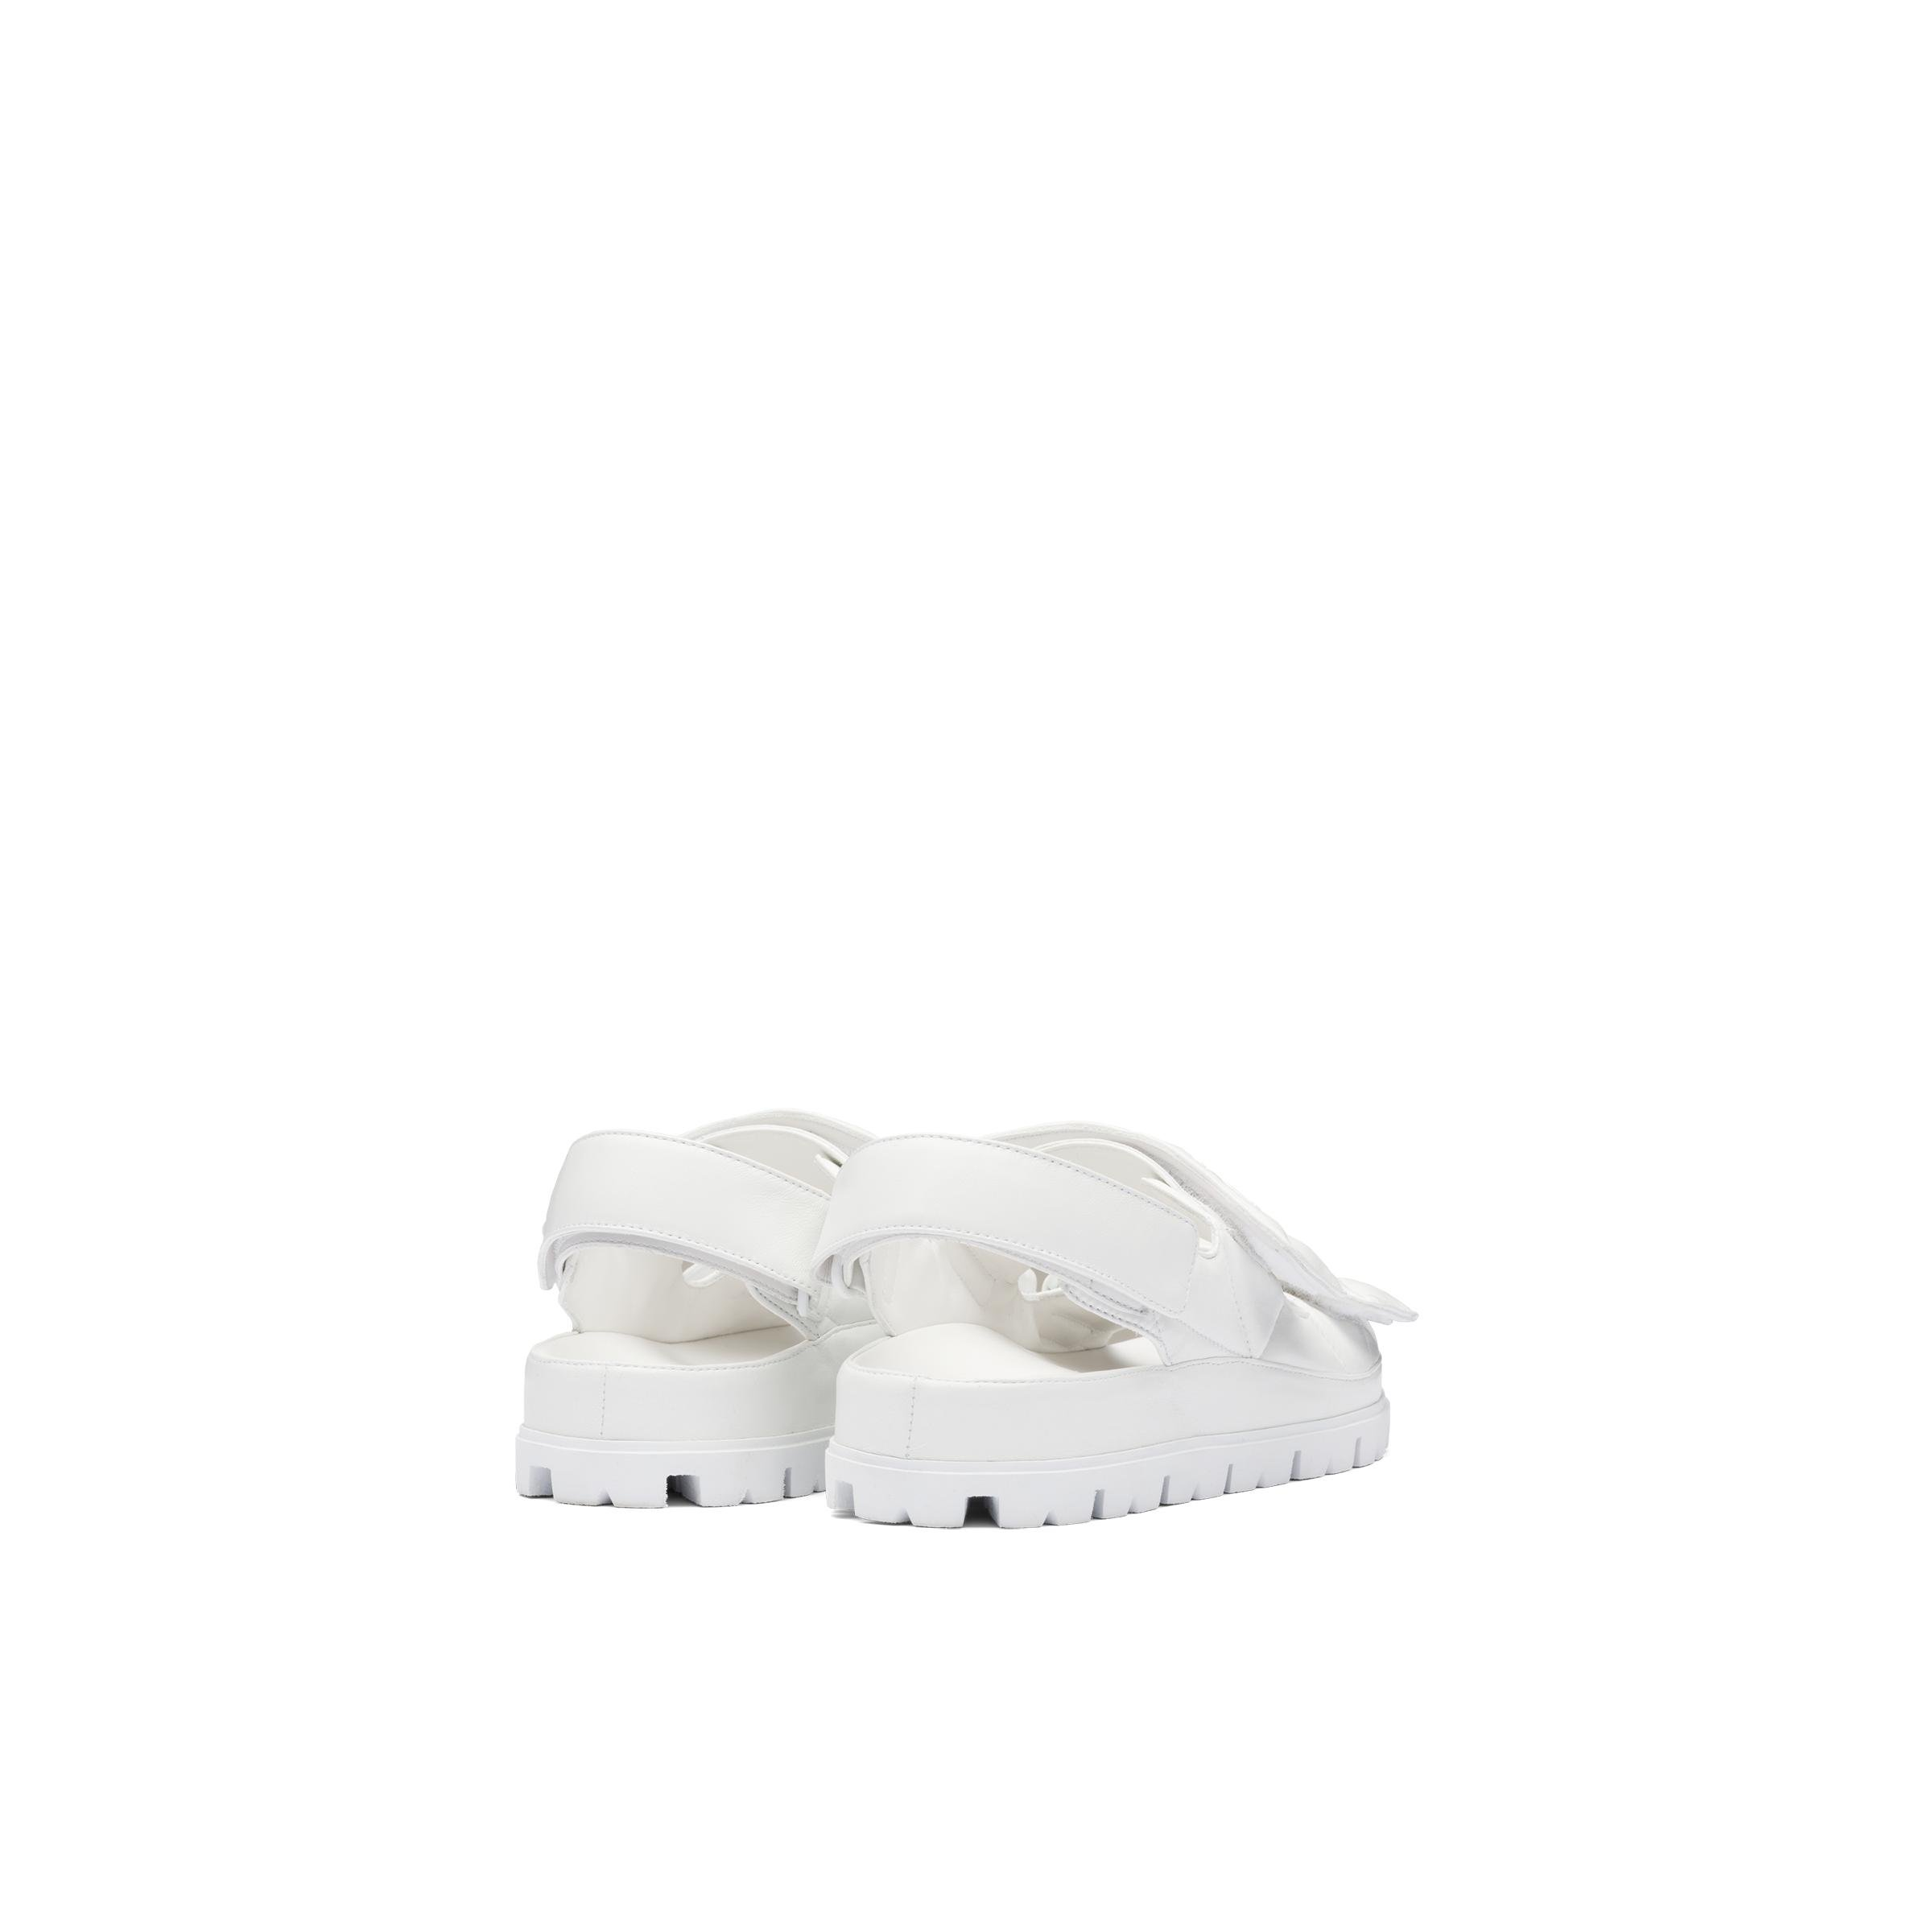 Padded Nappa Leather Sandals Women White 3